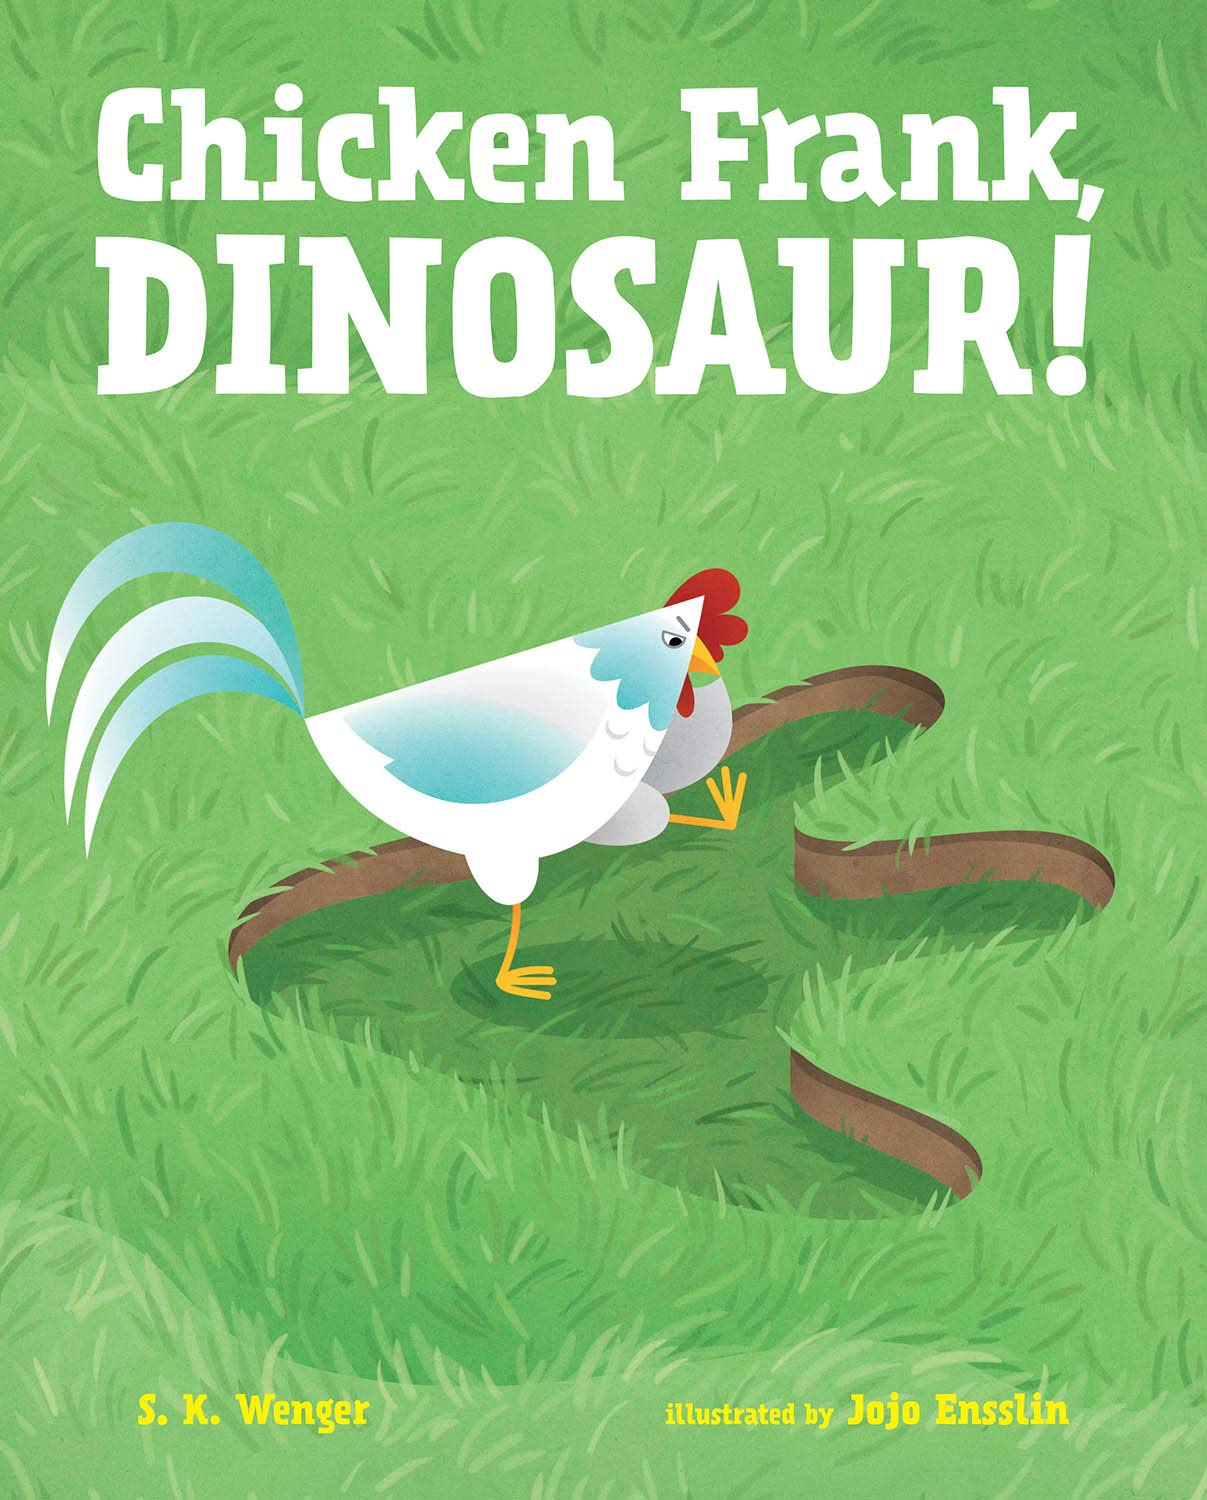 celebrate-picture-books-picture-book-review-chicken-frank-dinosaur-cover